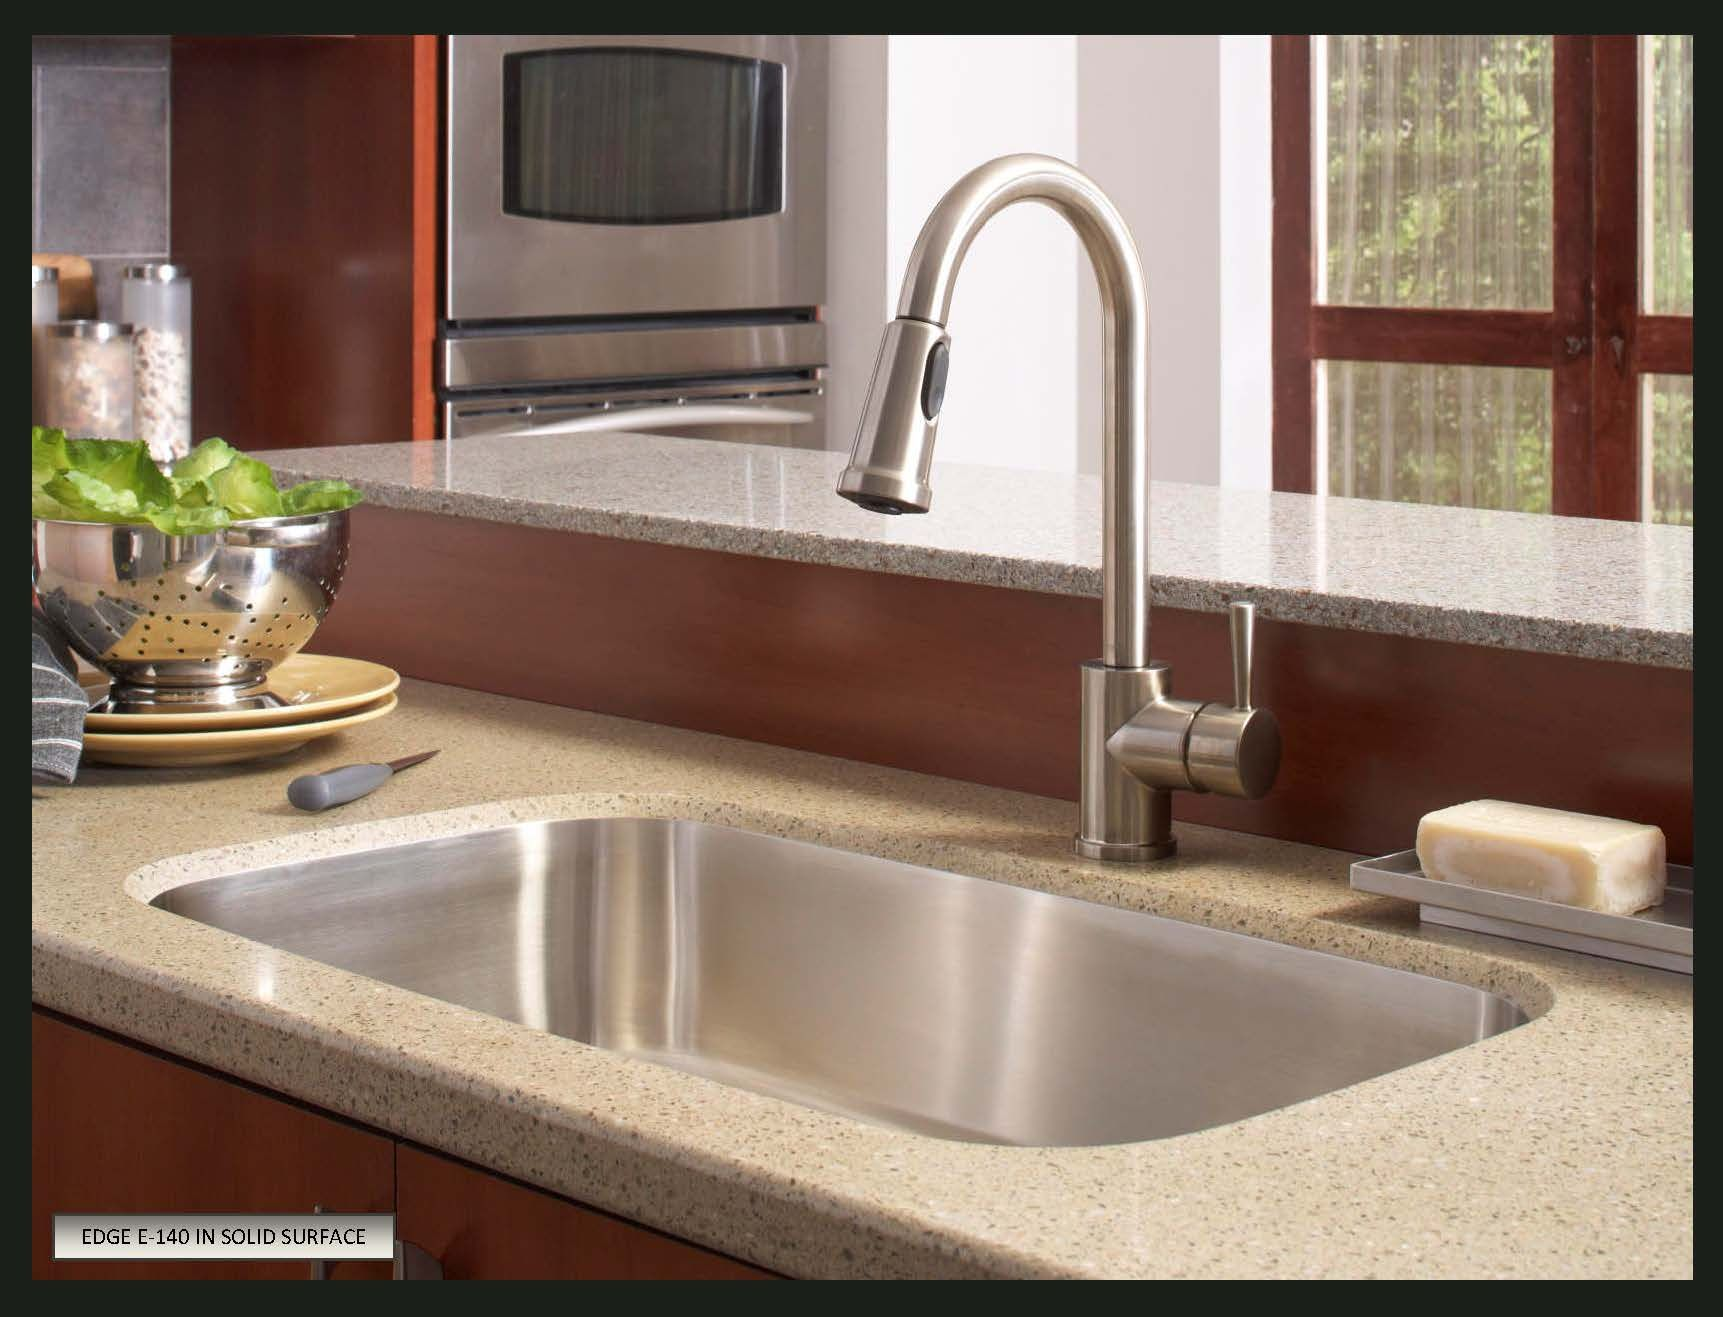 Stainless sink in a corian countertop google search for Corian farm sink price